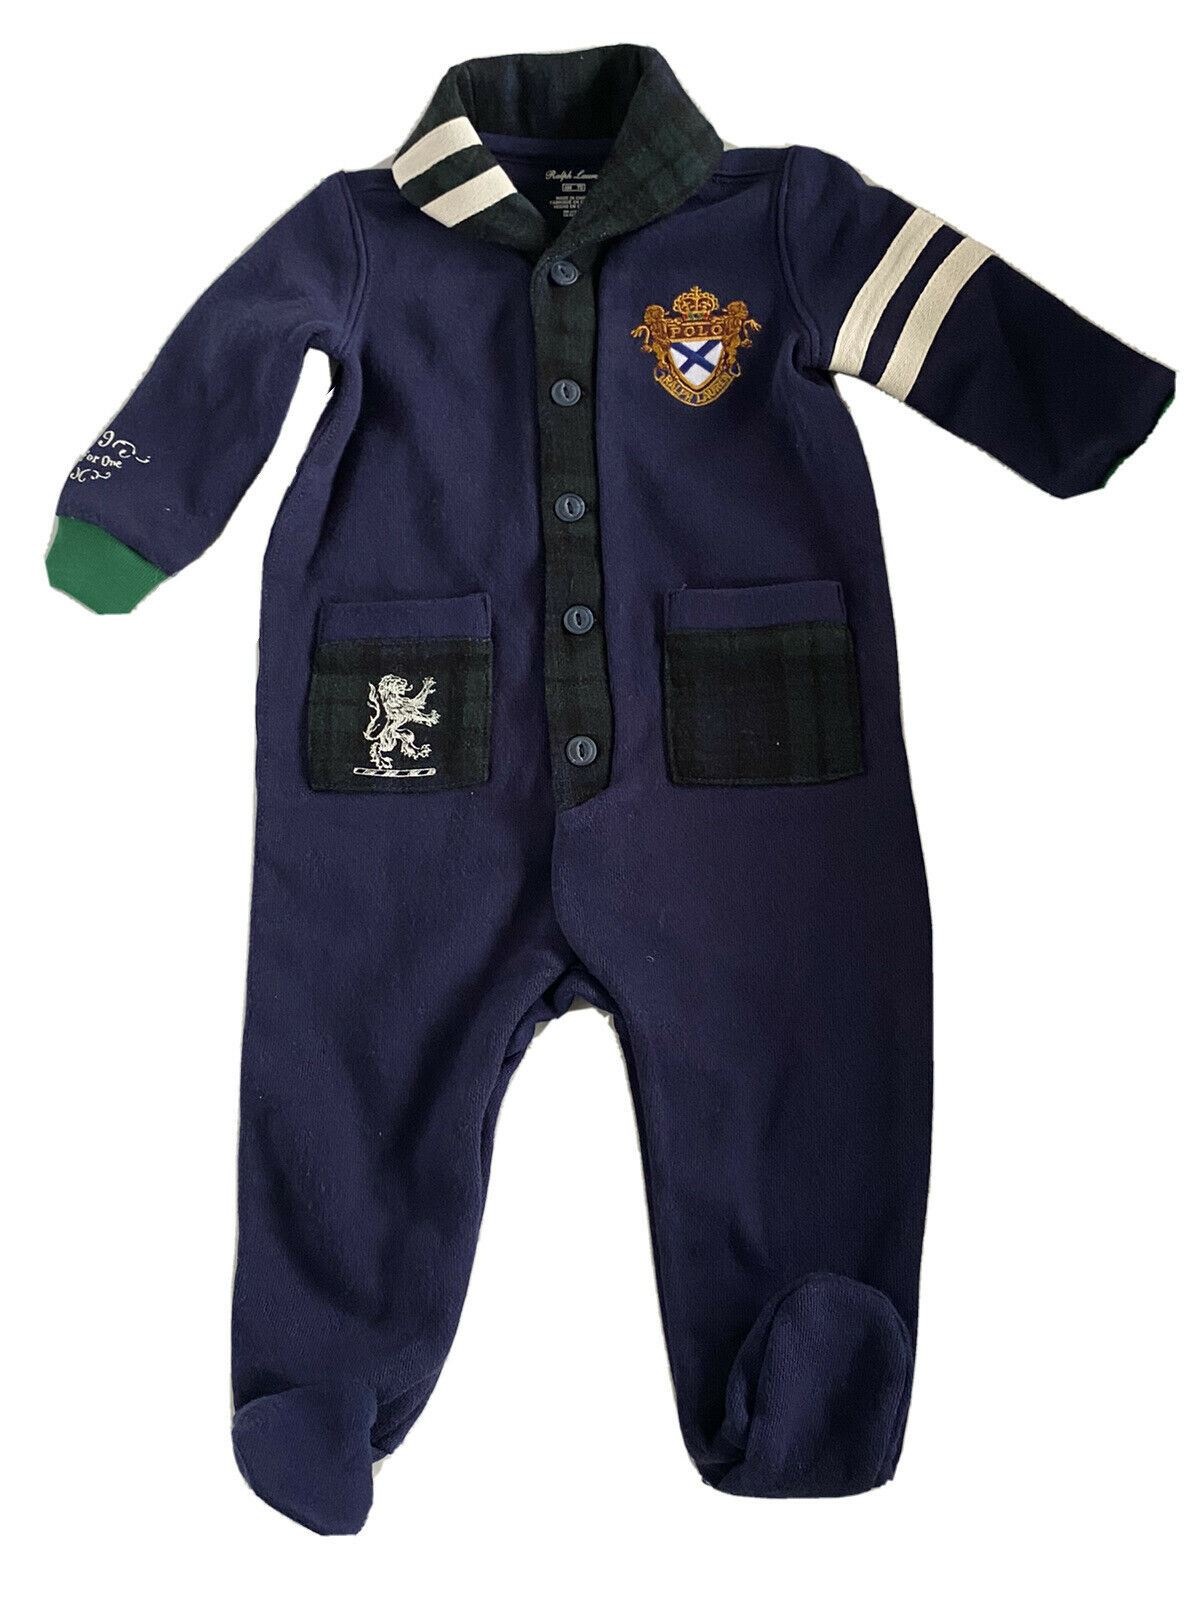 NWT $65 Polo Ralph Lauren Boy's Coverall 6 Months